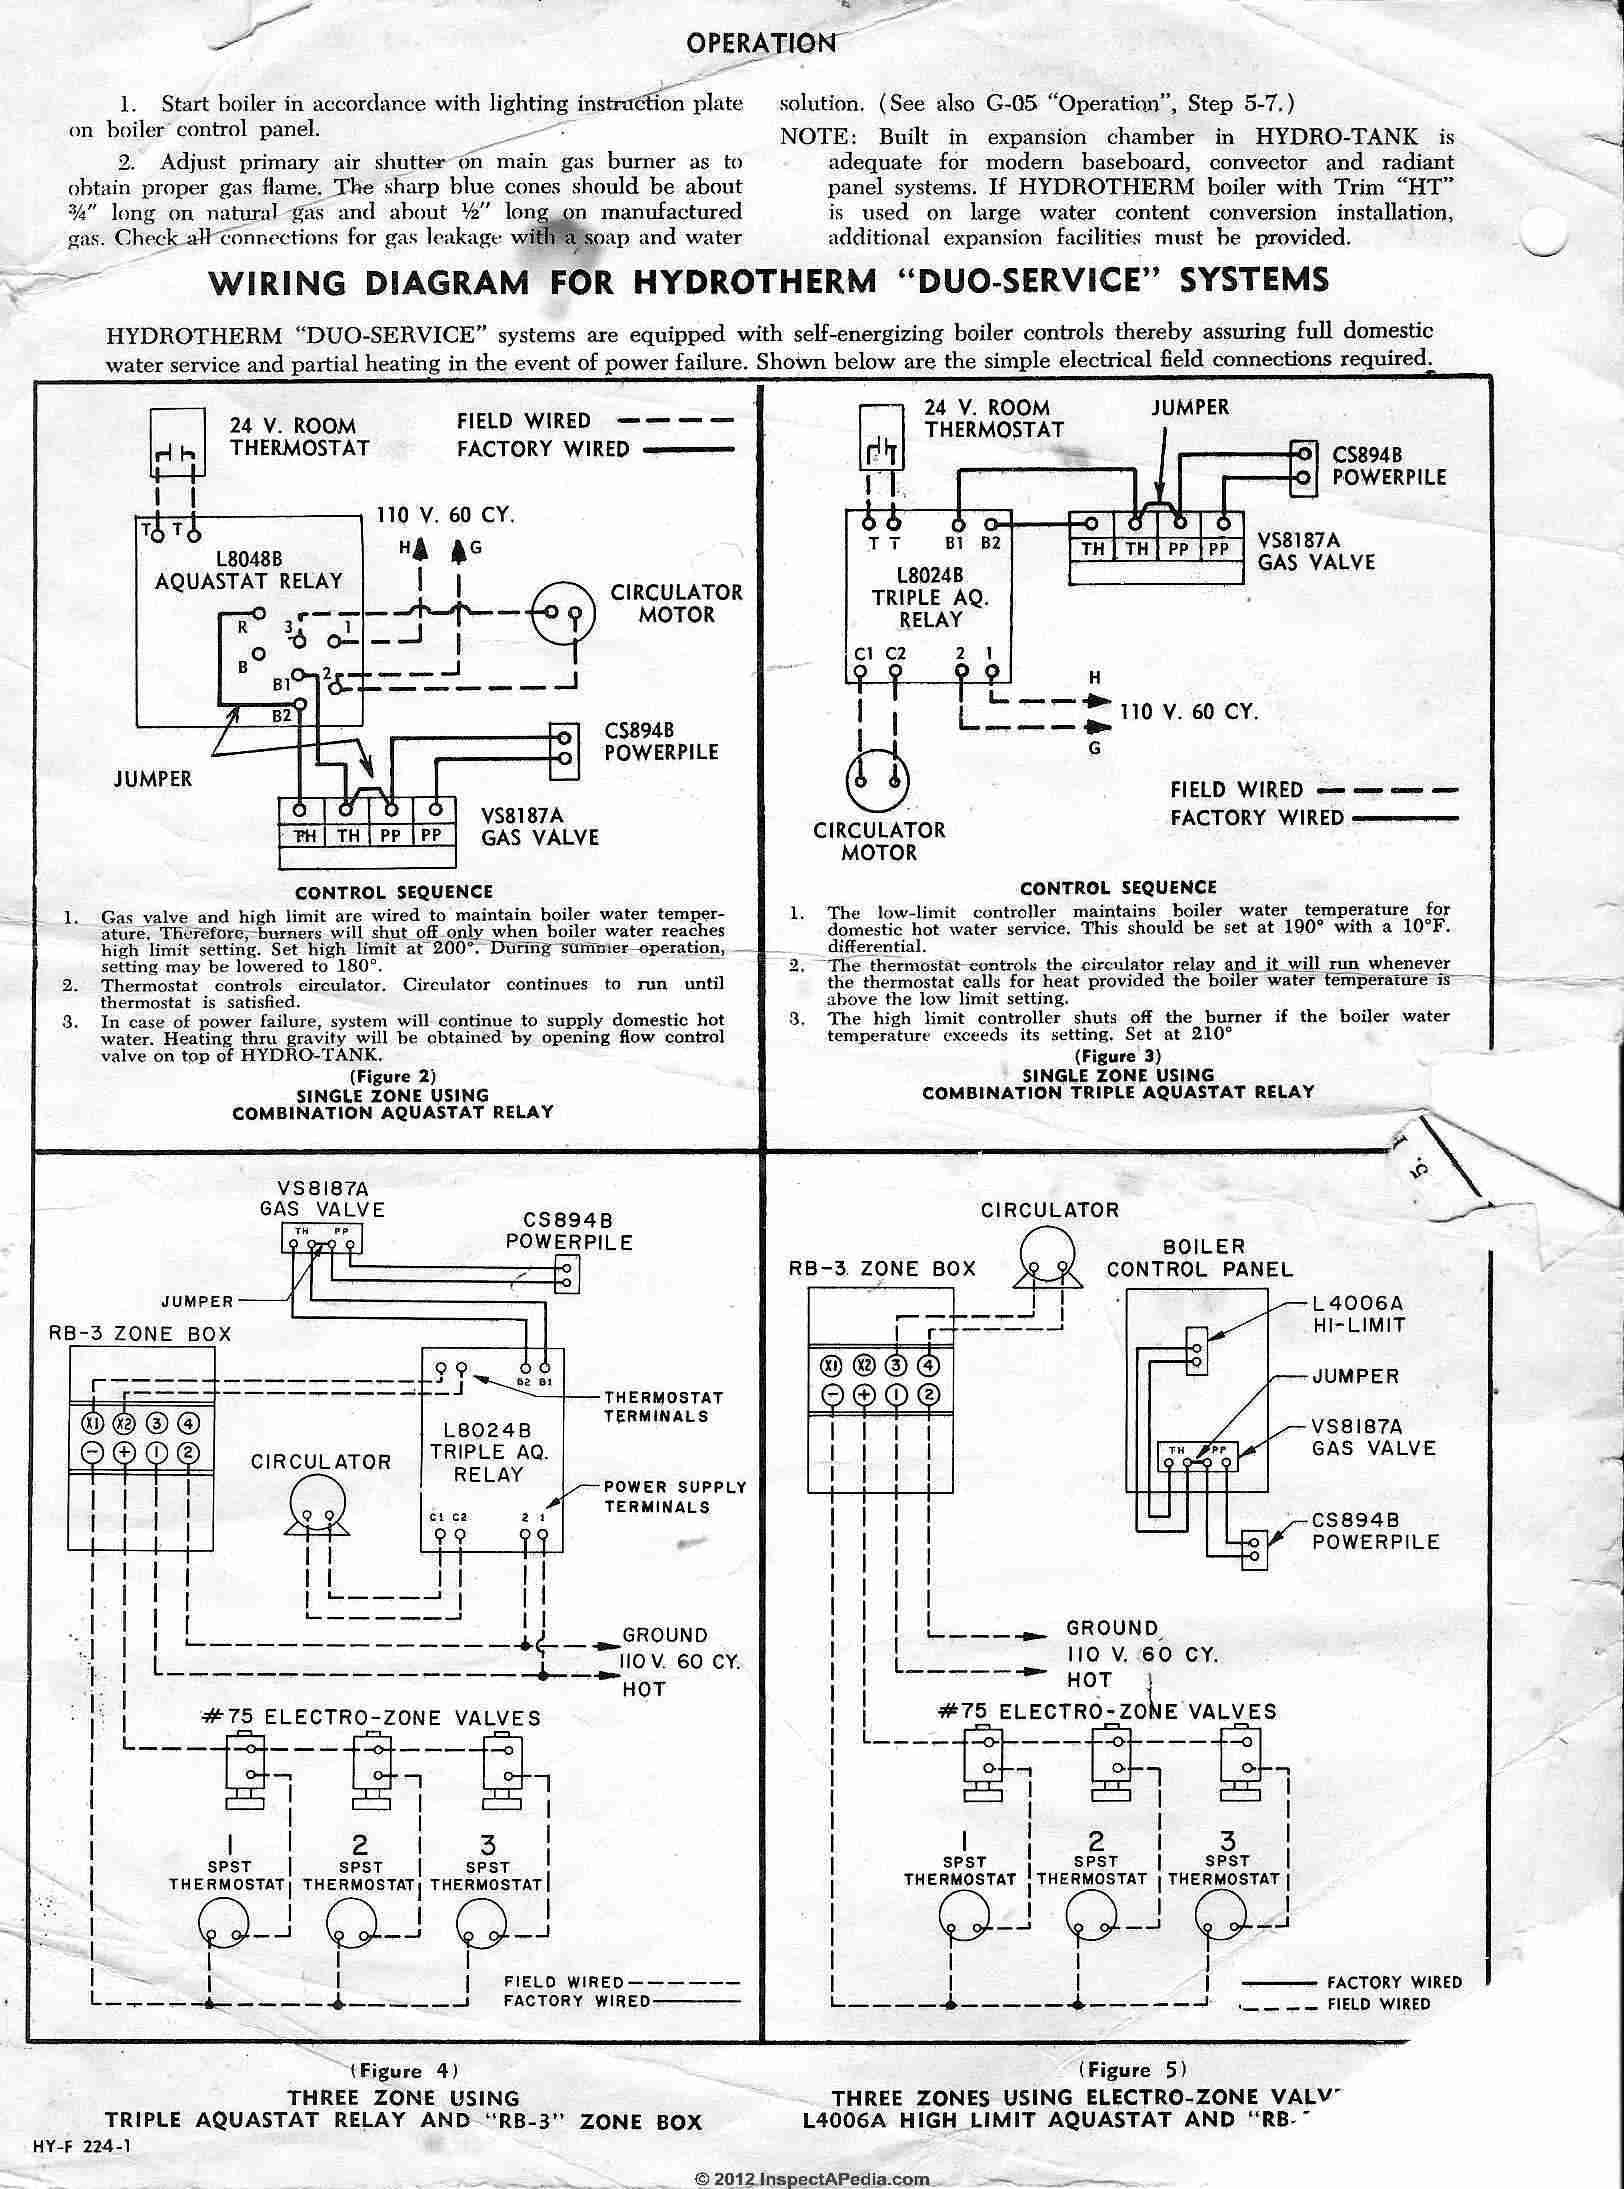 L8024B_Aquastat_0422_DJFcs heating boiler aquastat control diagnosis, troubleshooting, repair honeywell zone control wiring diagram at crackthecode.co